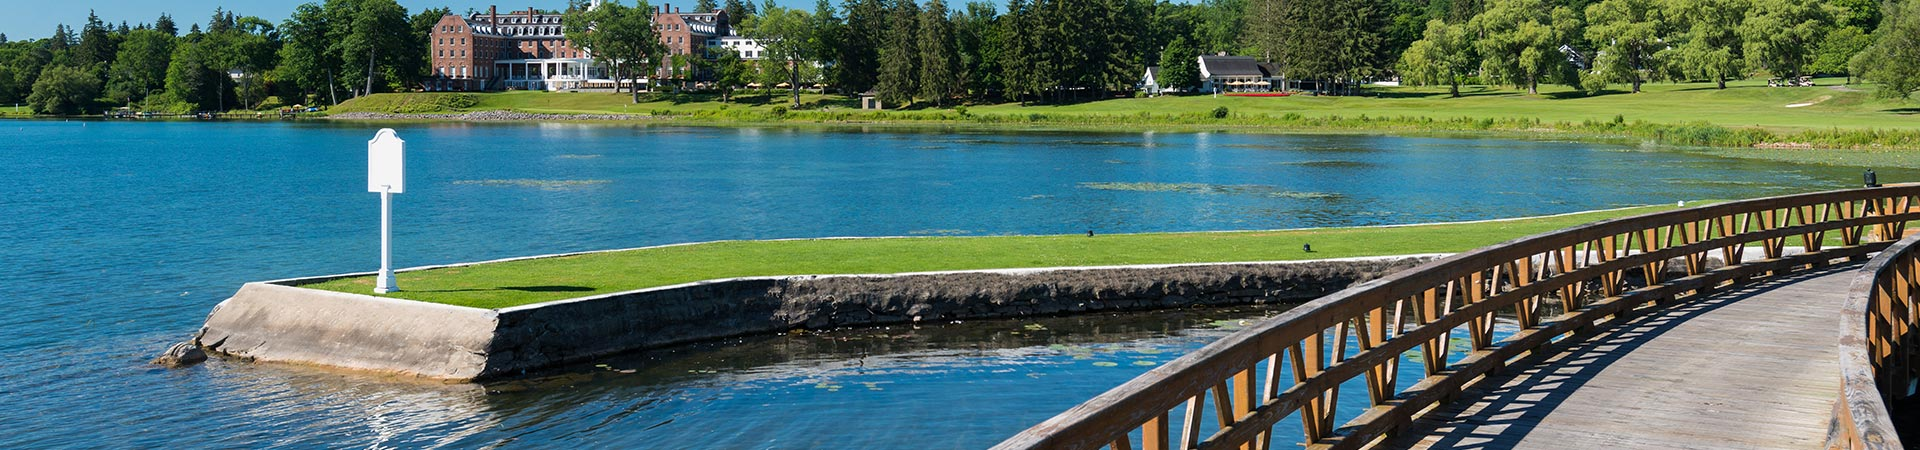 Course Info & Rates at Cooperstown, New York